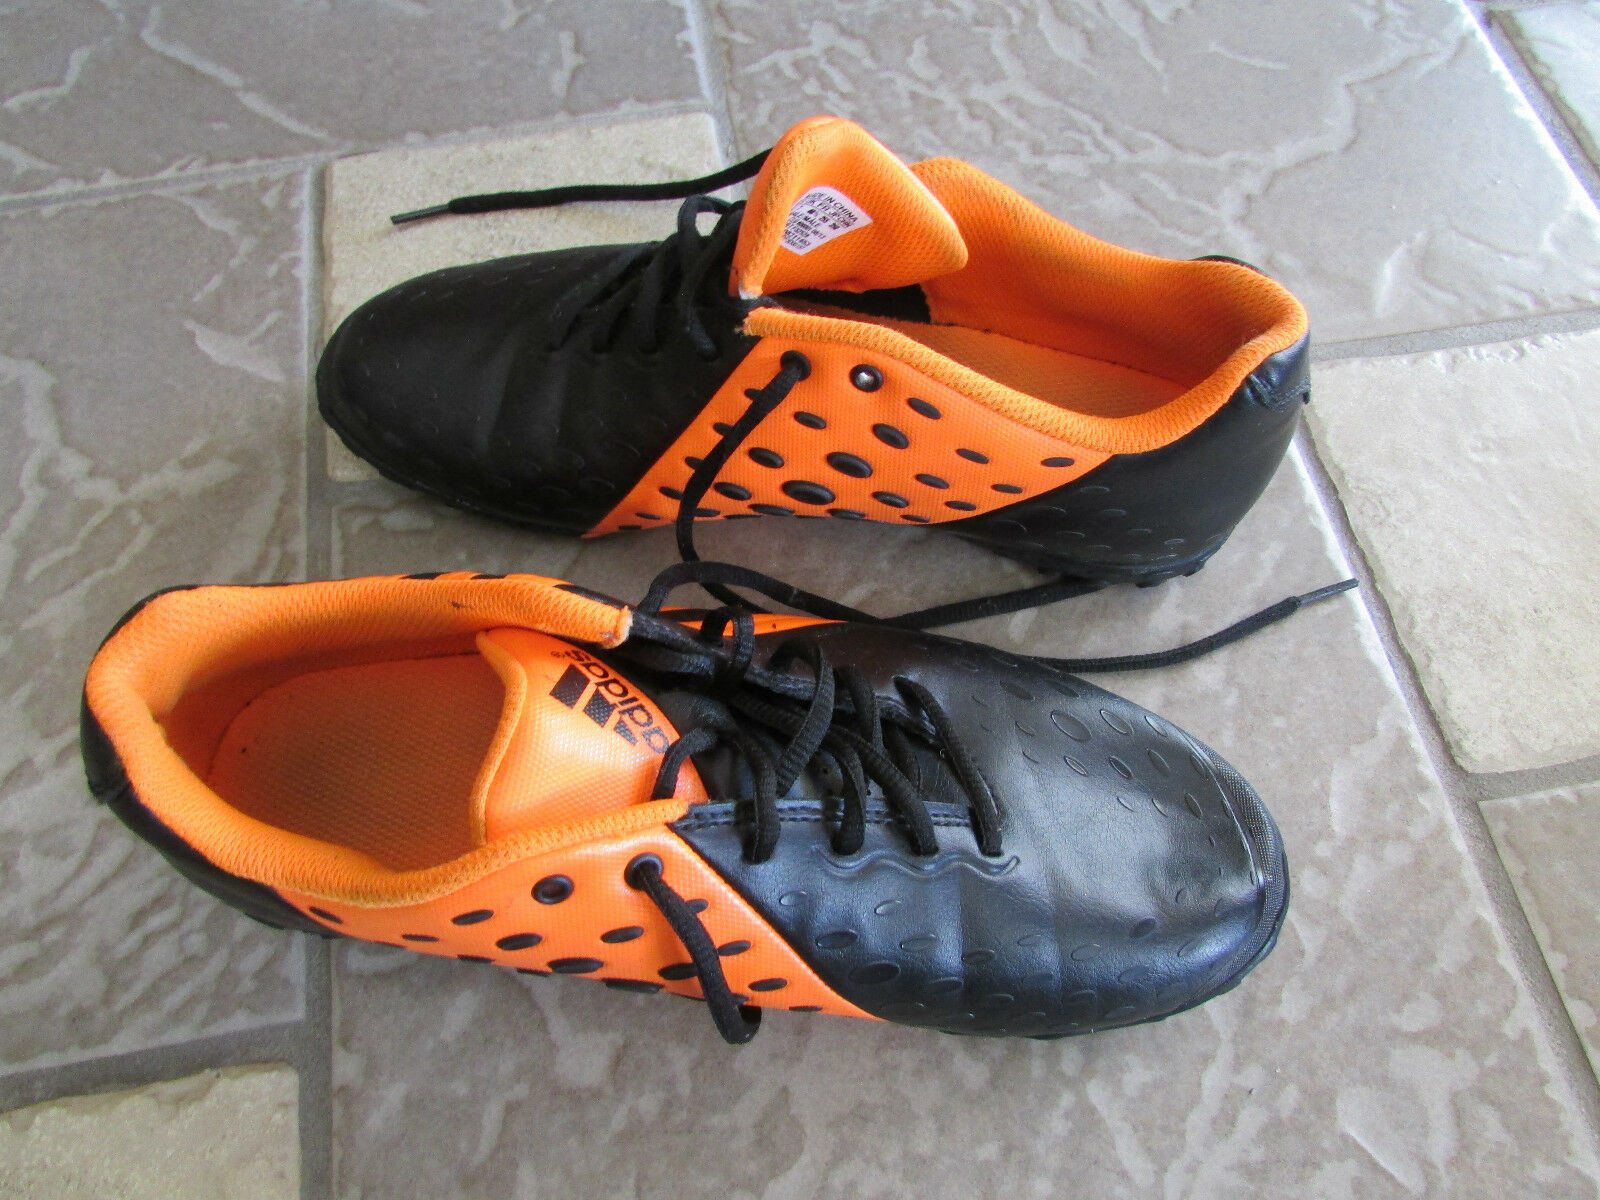 ADIDAS INDOOR SOCCER SHOES MENS 7.5 TURF SHOES INDOOR TURF SHOES FREE SHIP Seasonal price cuts, discount benefits